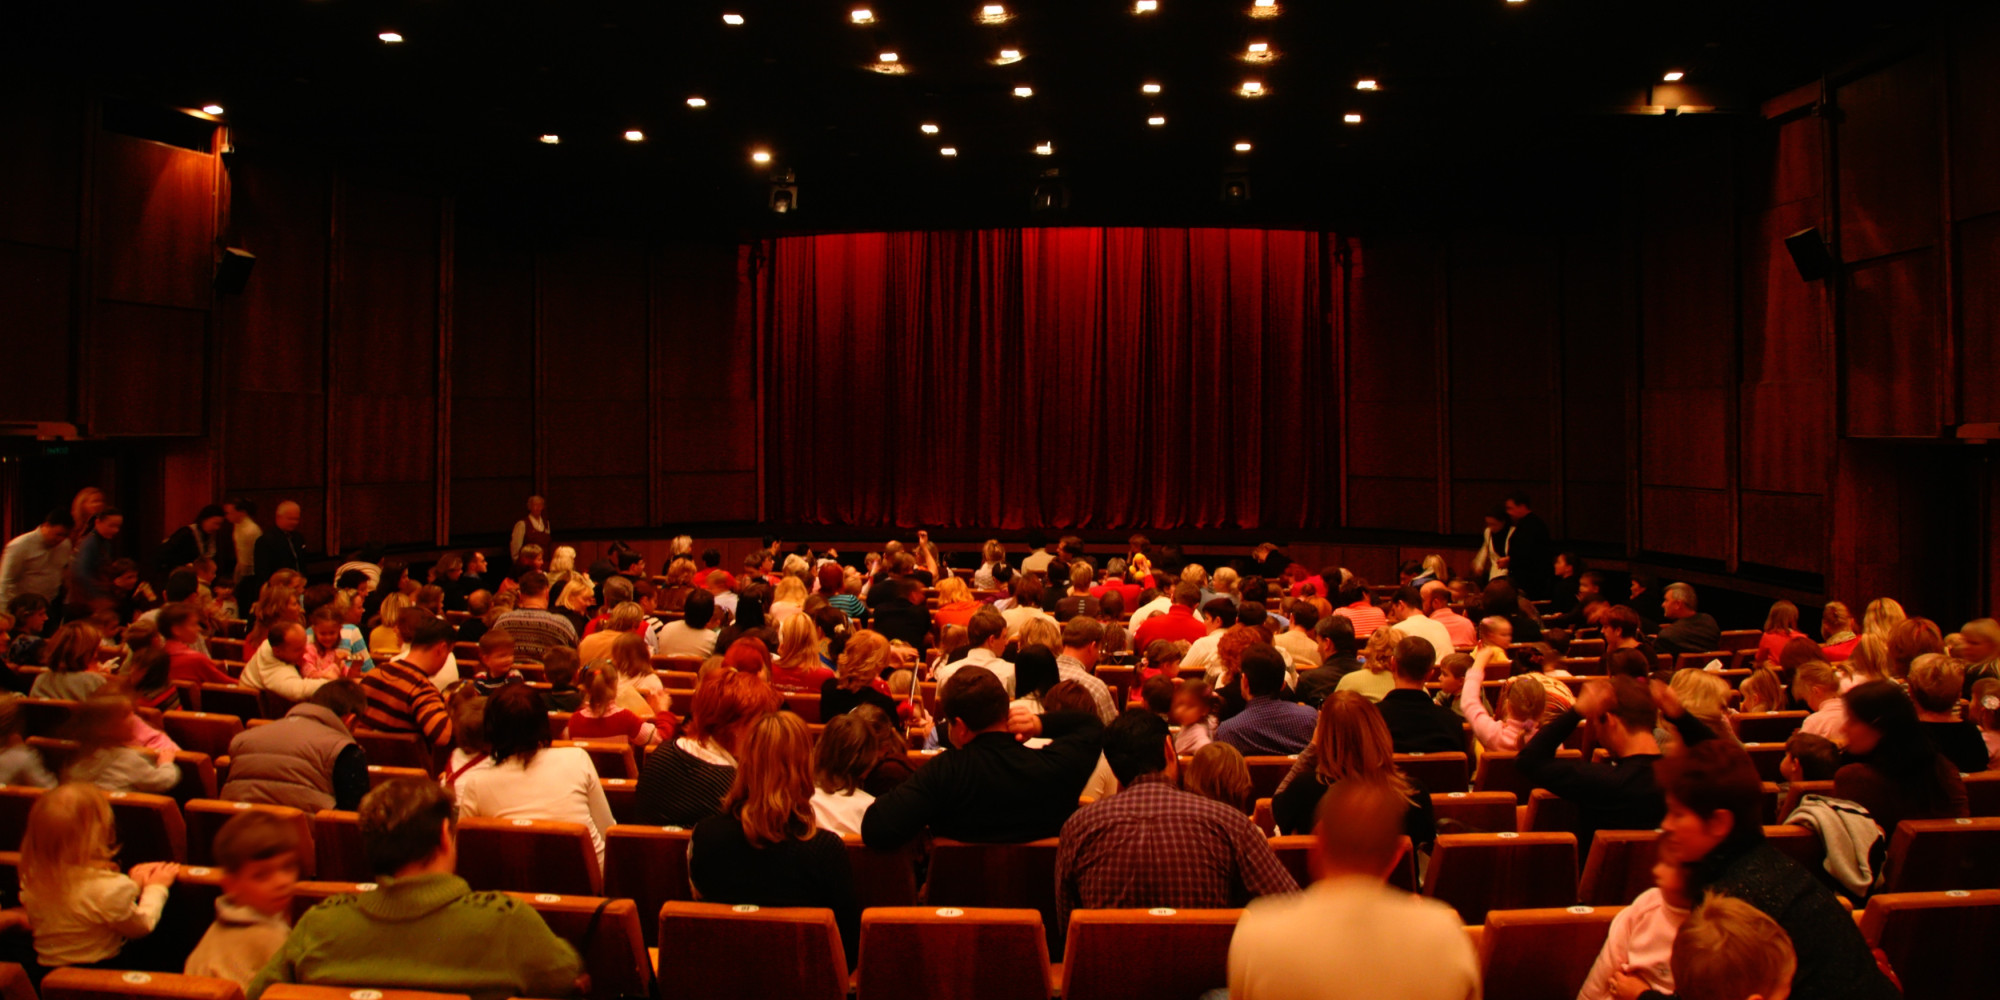 theaters turn lights up volume down at special screenings